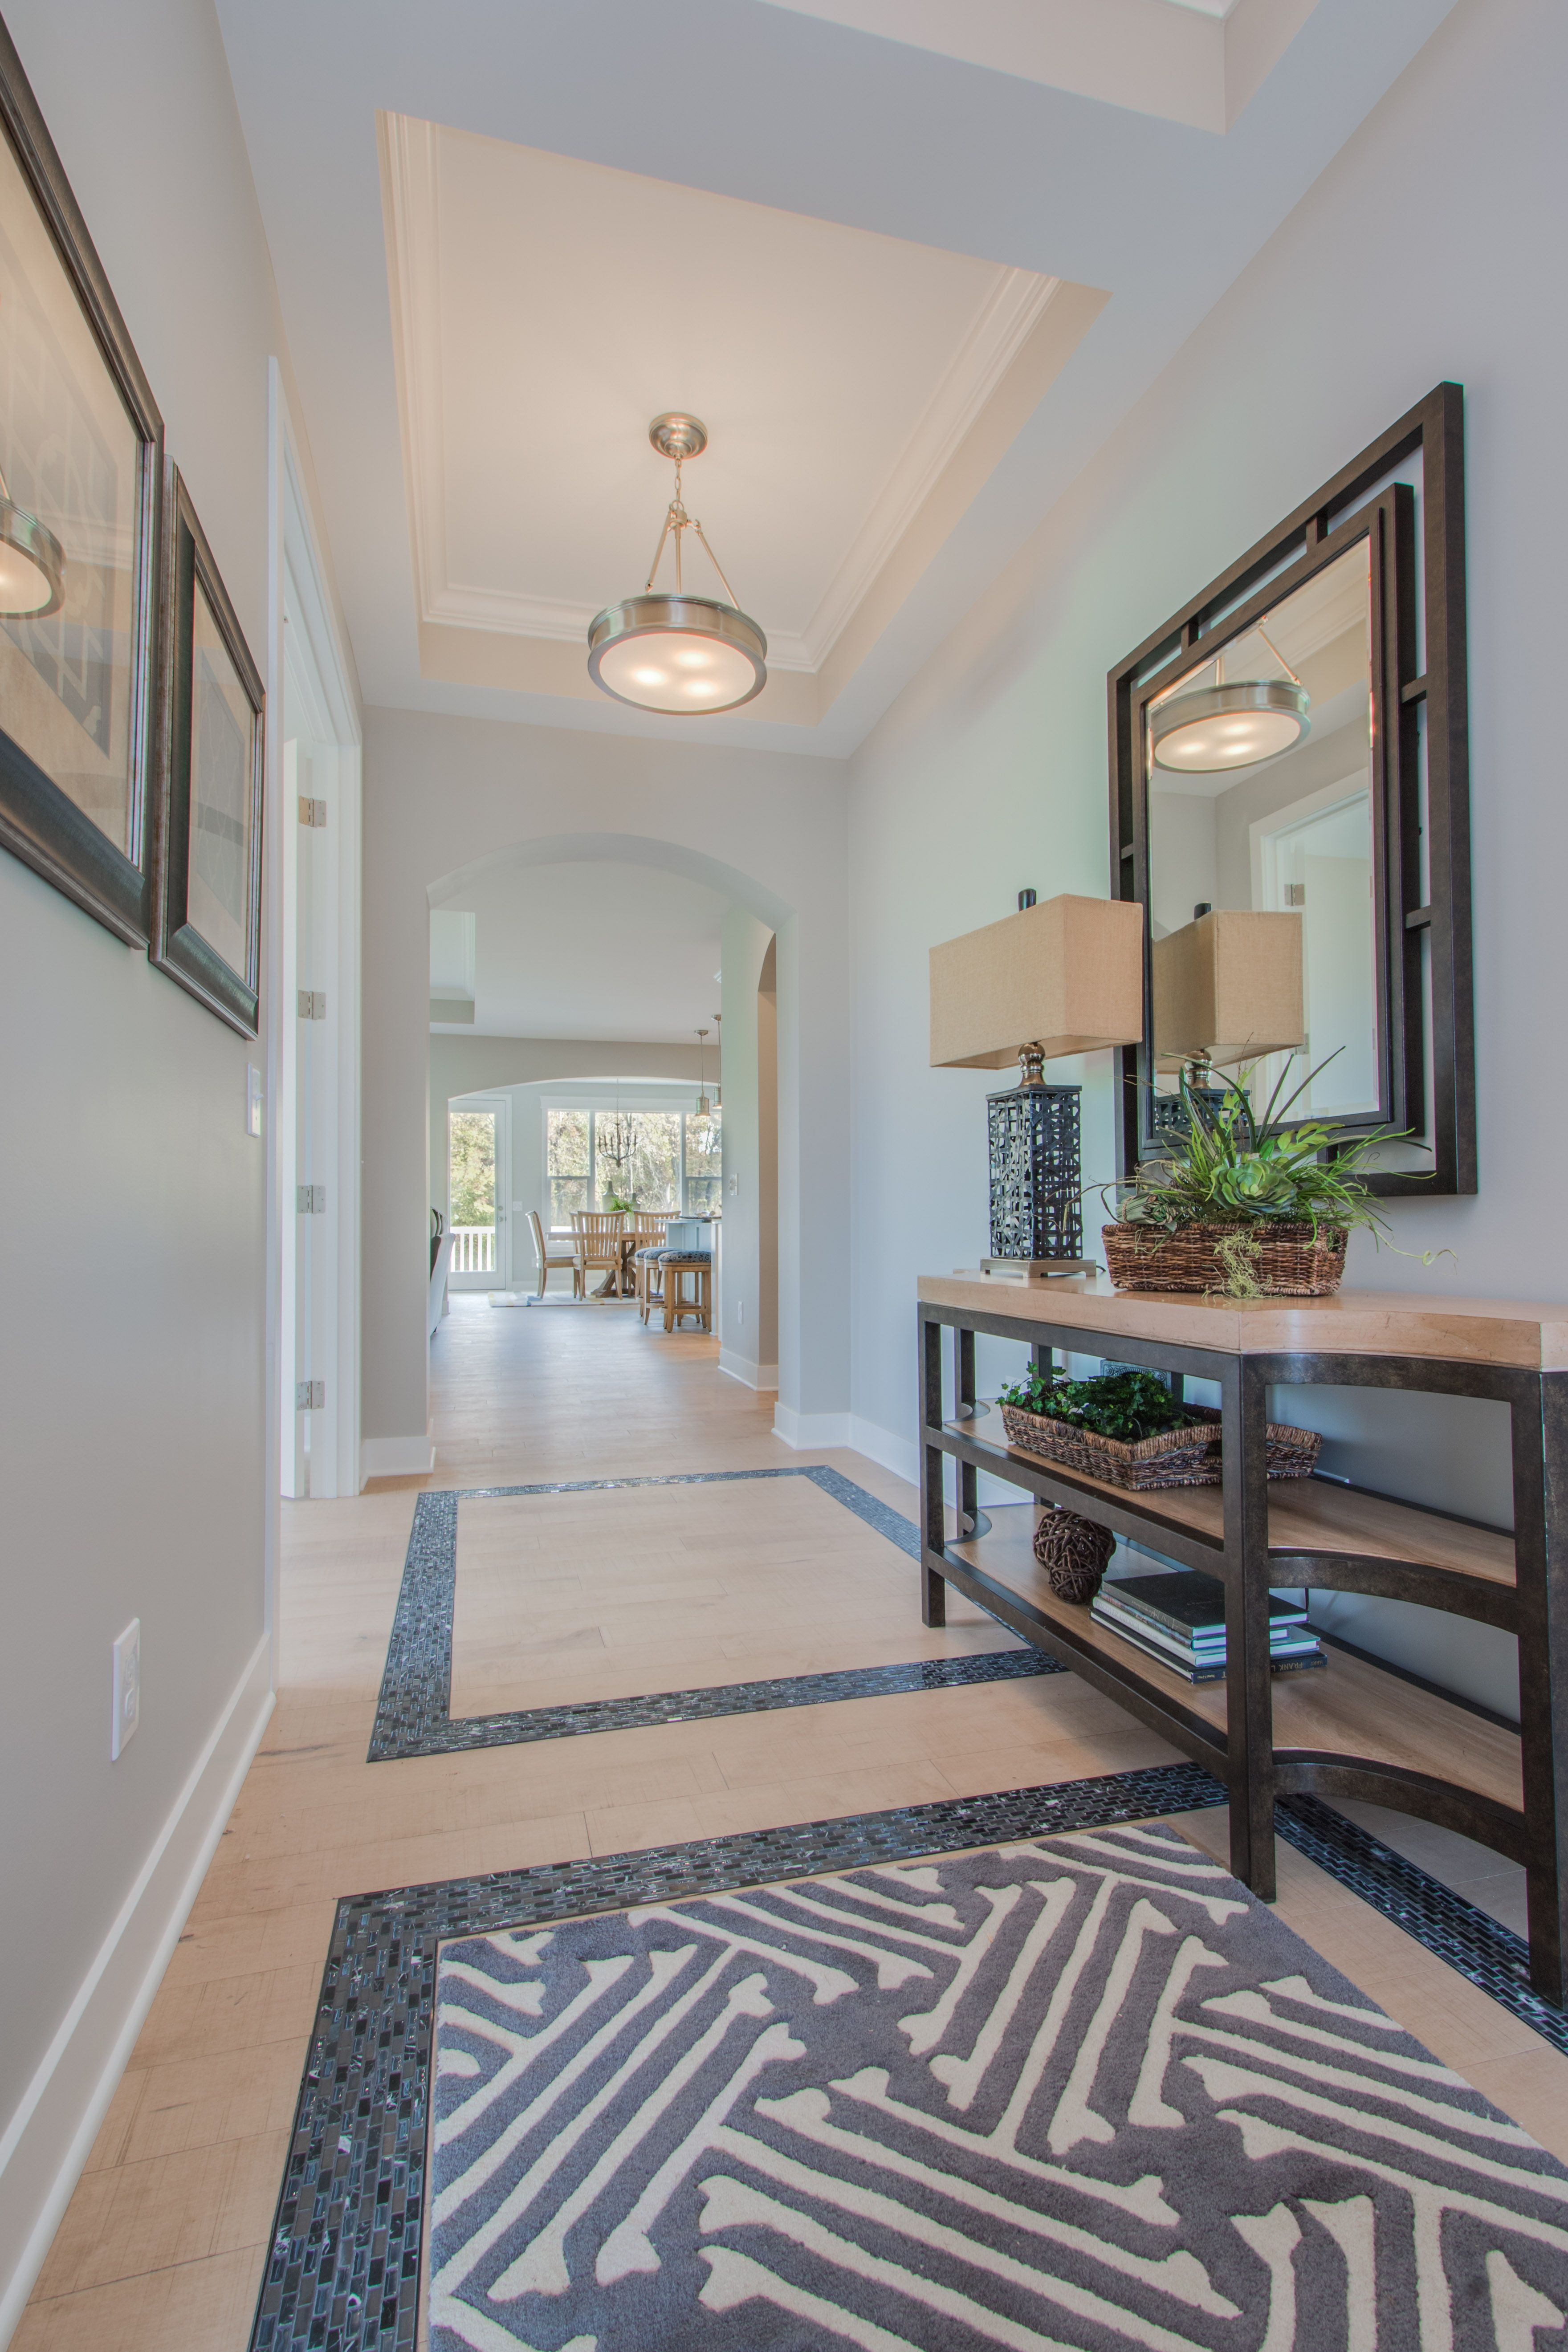 Oakland hills ceramic tile floors coffer and tile flooring foyer natural finish maple hardwood floors ceramic tile floor inlay coffered ceiling with dailygadgetfo Image collections